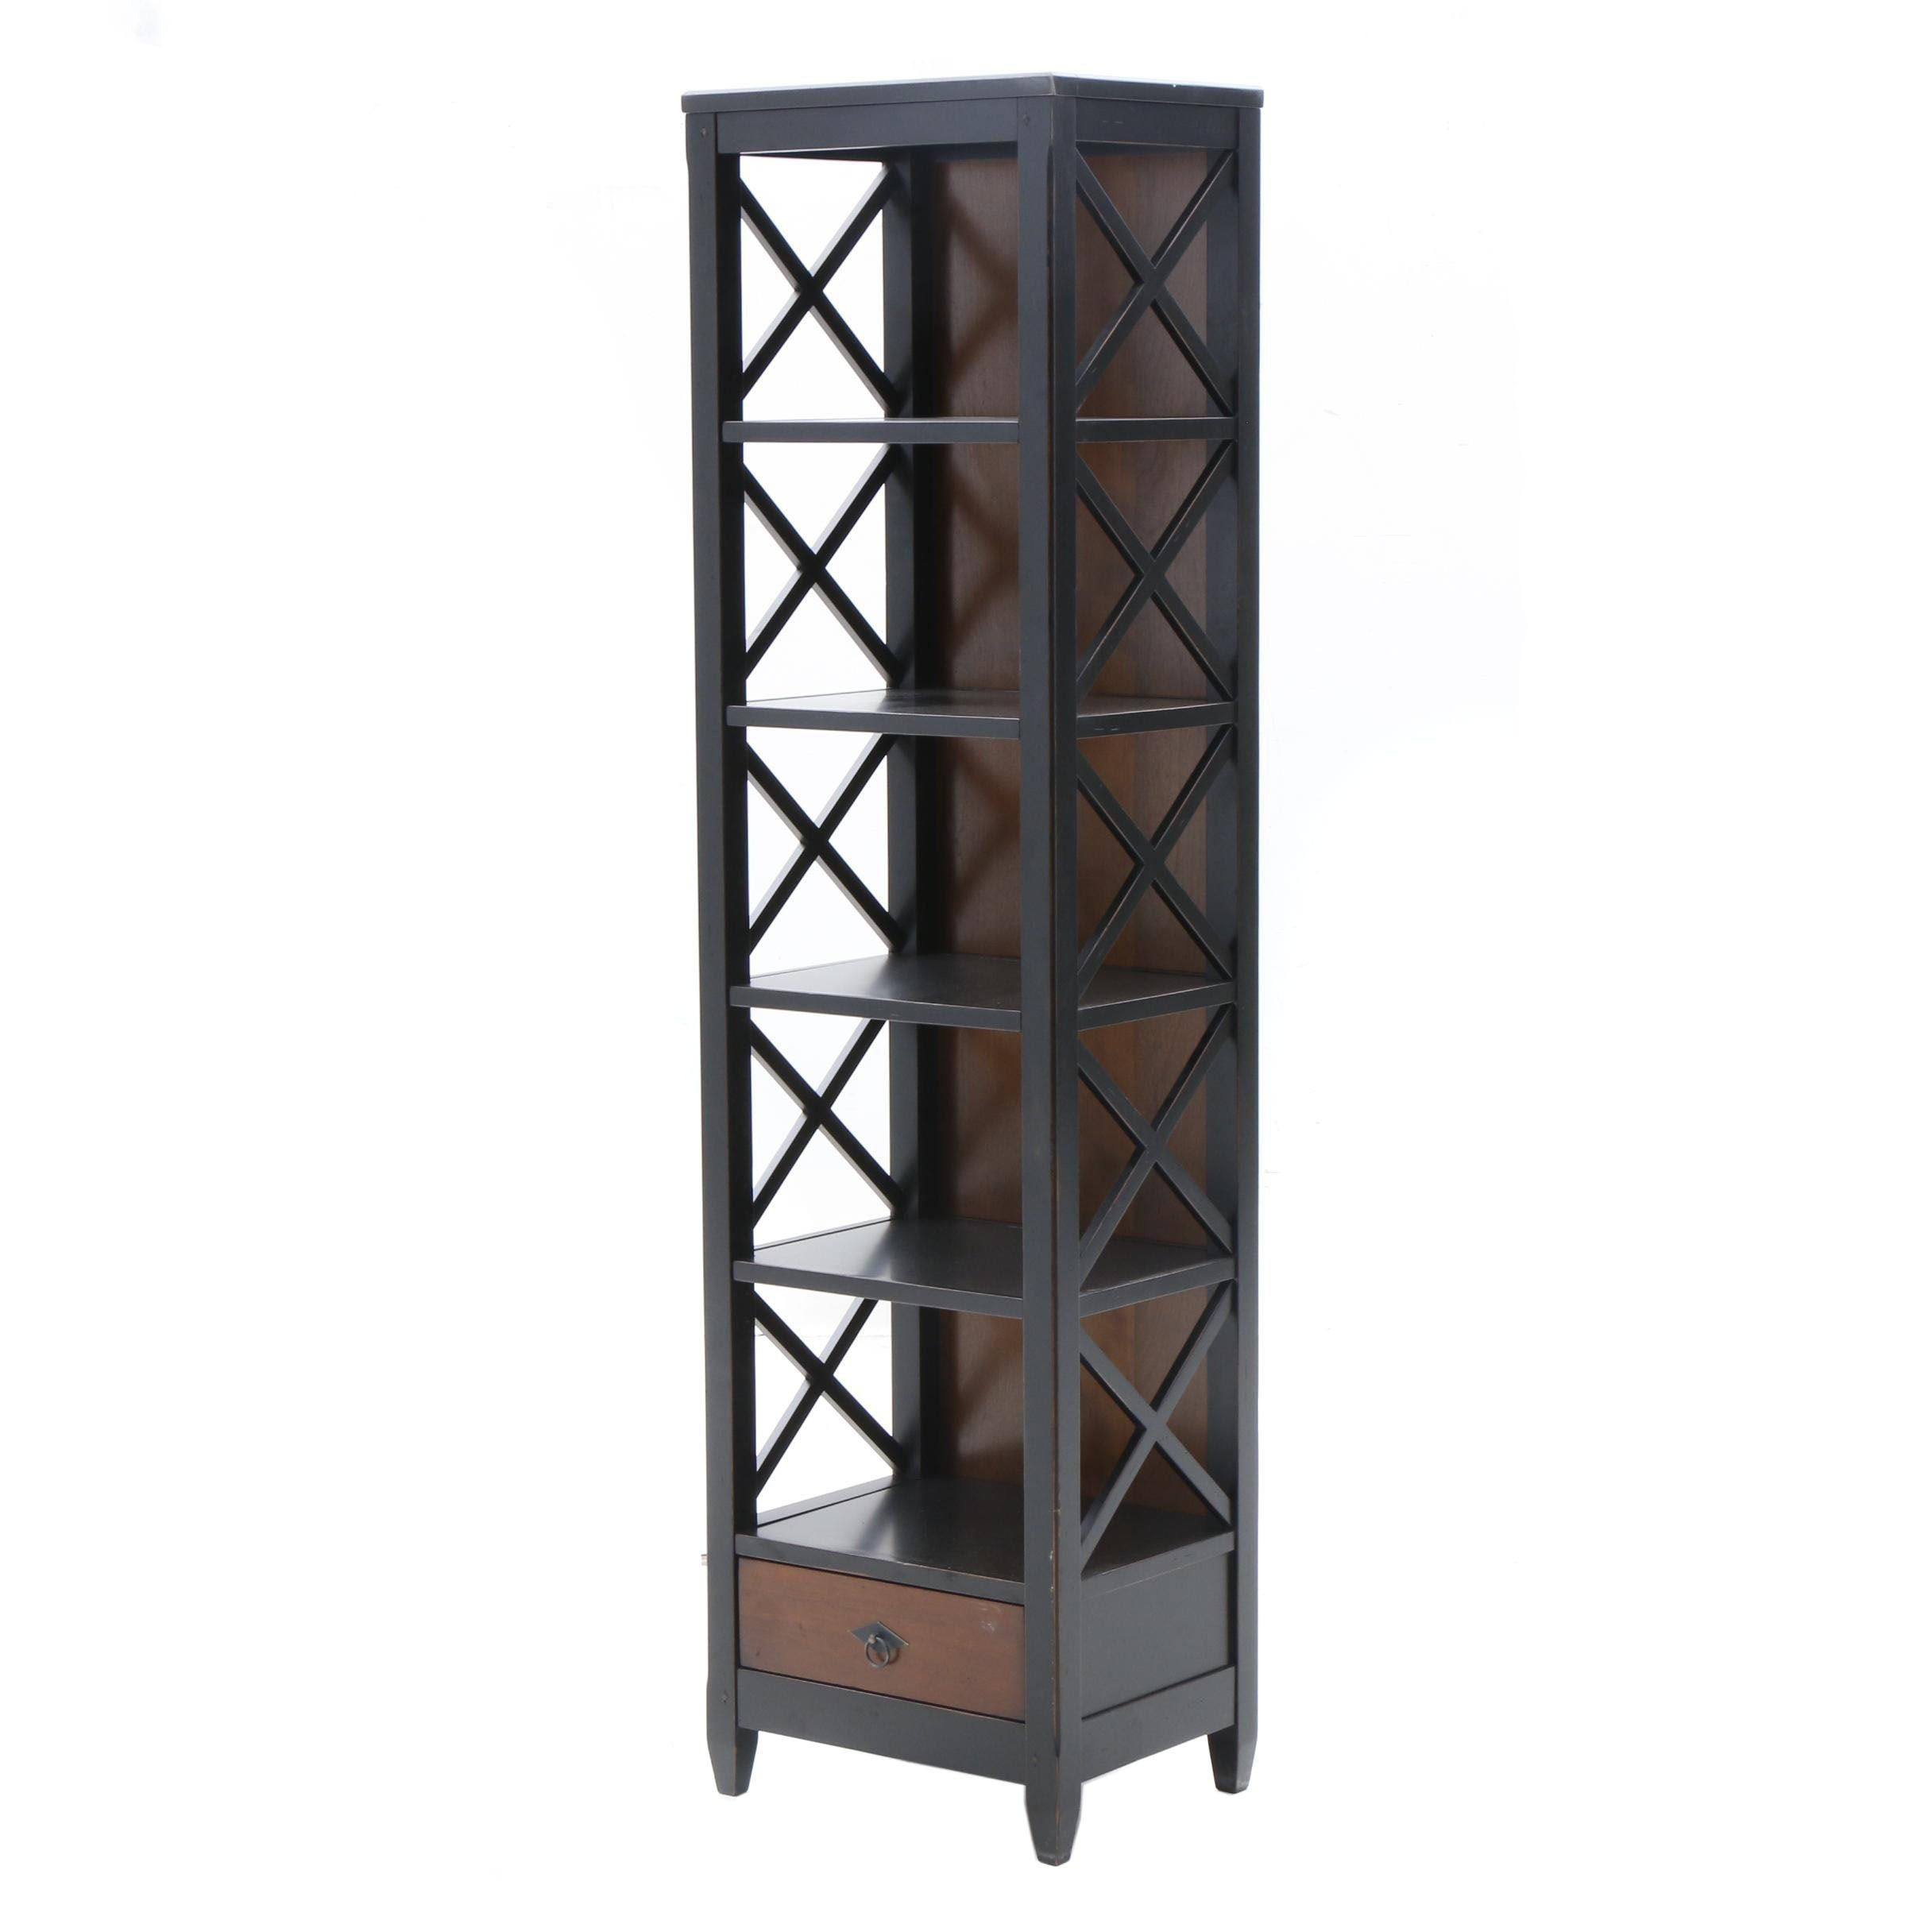 Contemporary Painted Wood Black Lattice Bookcase by Arhaus